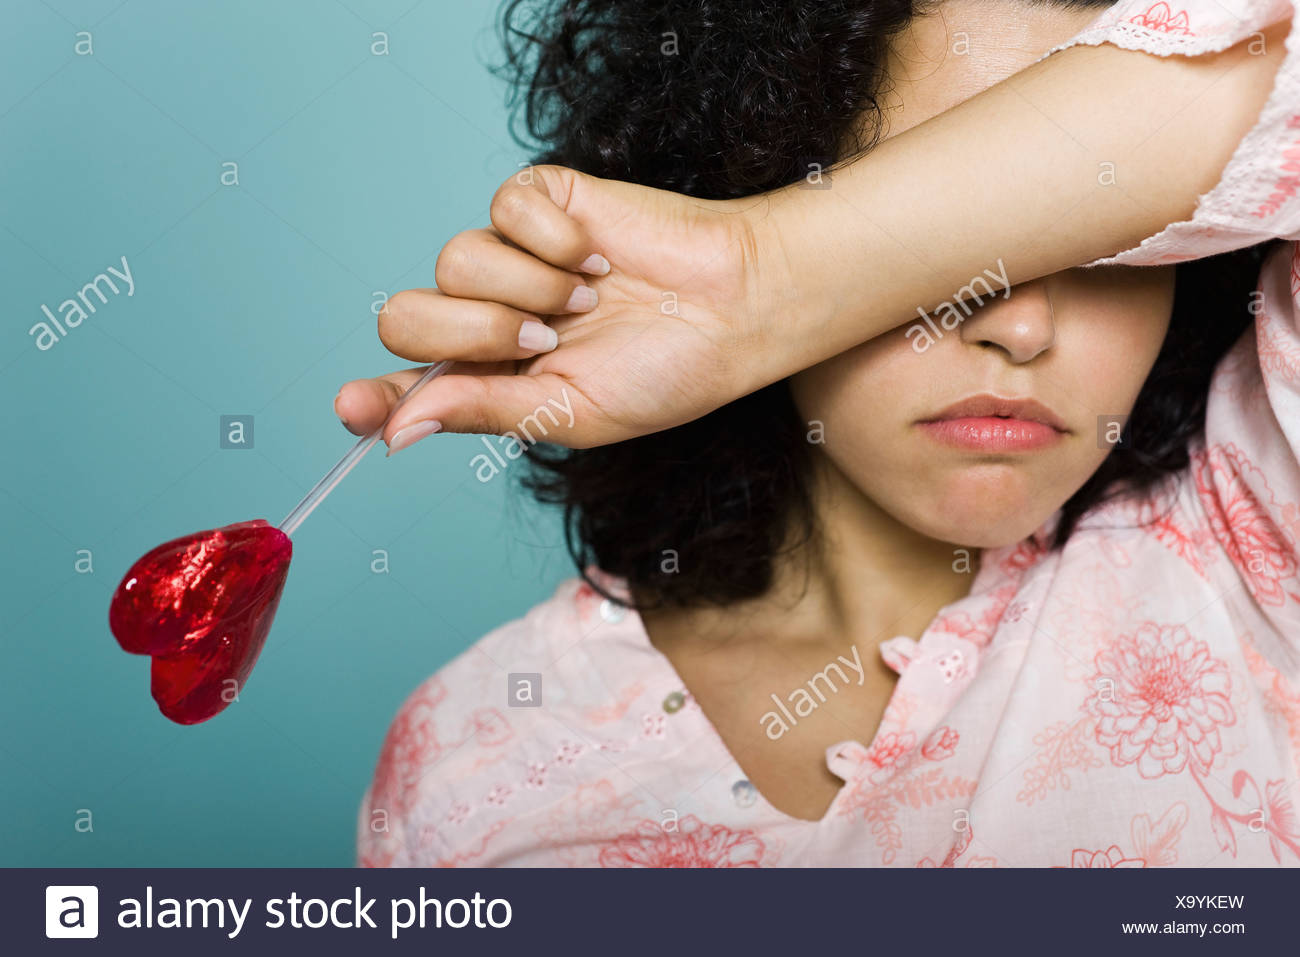 Woman frowning and covering eyes with arm, holding heart-shaped lollipop - Stock Image